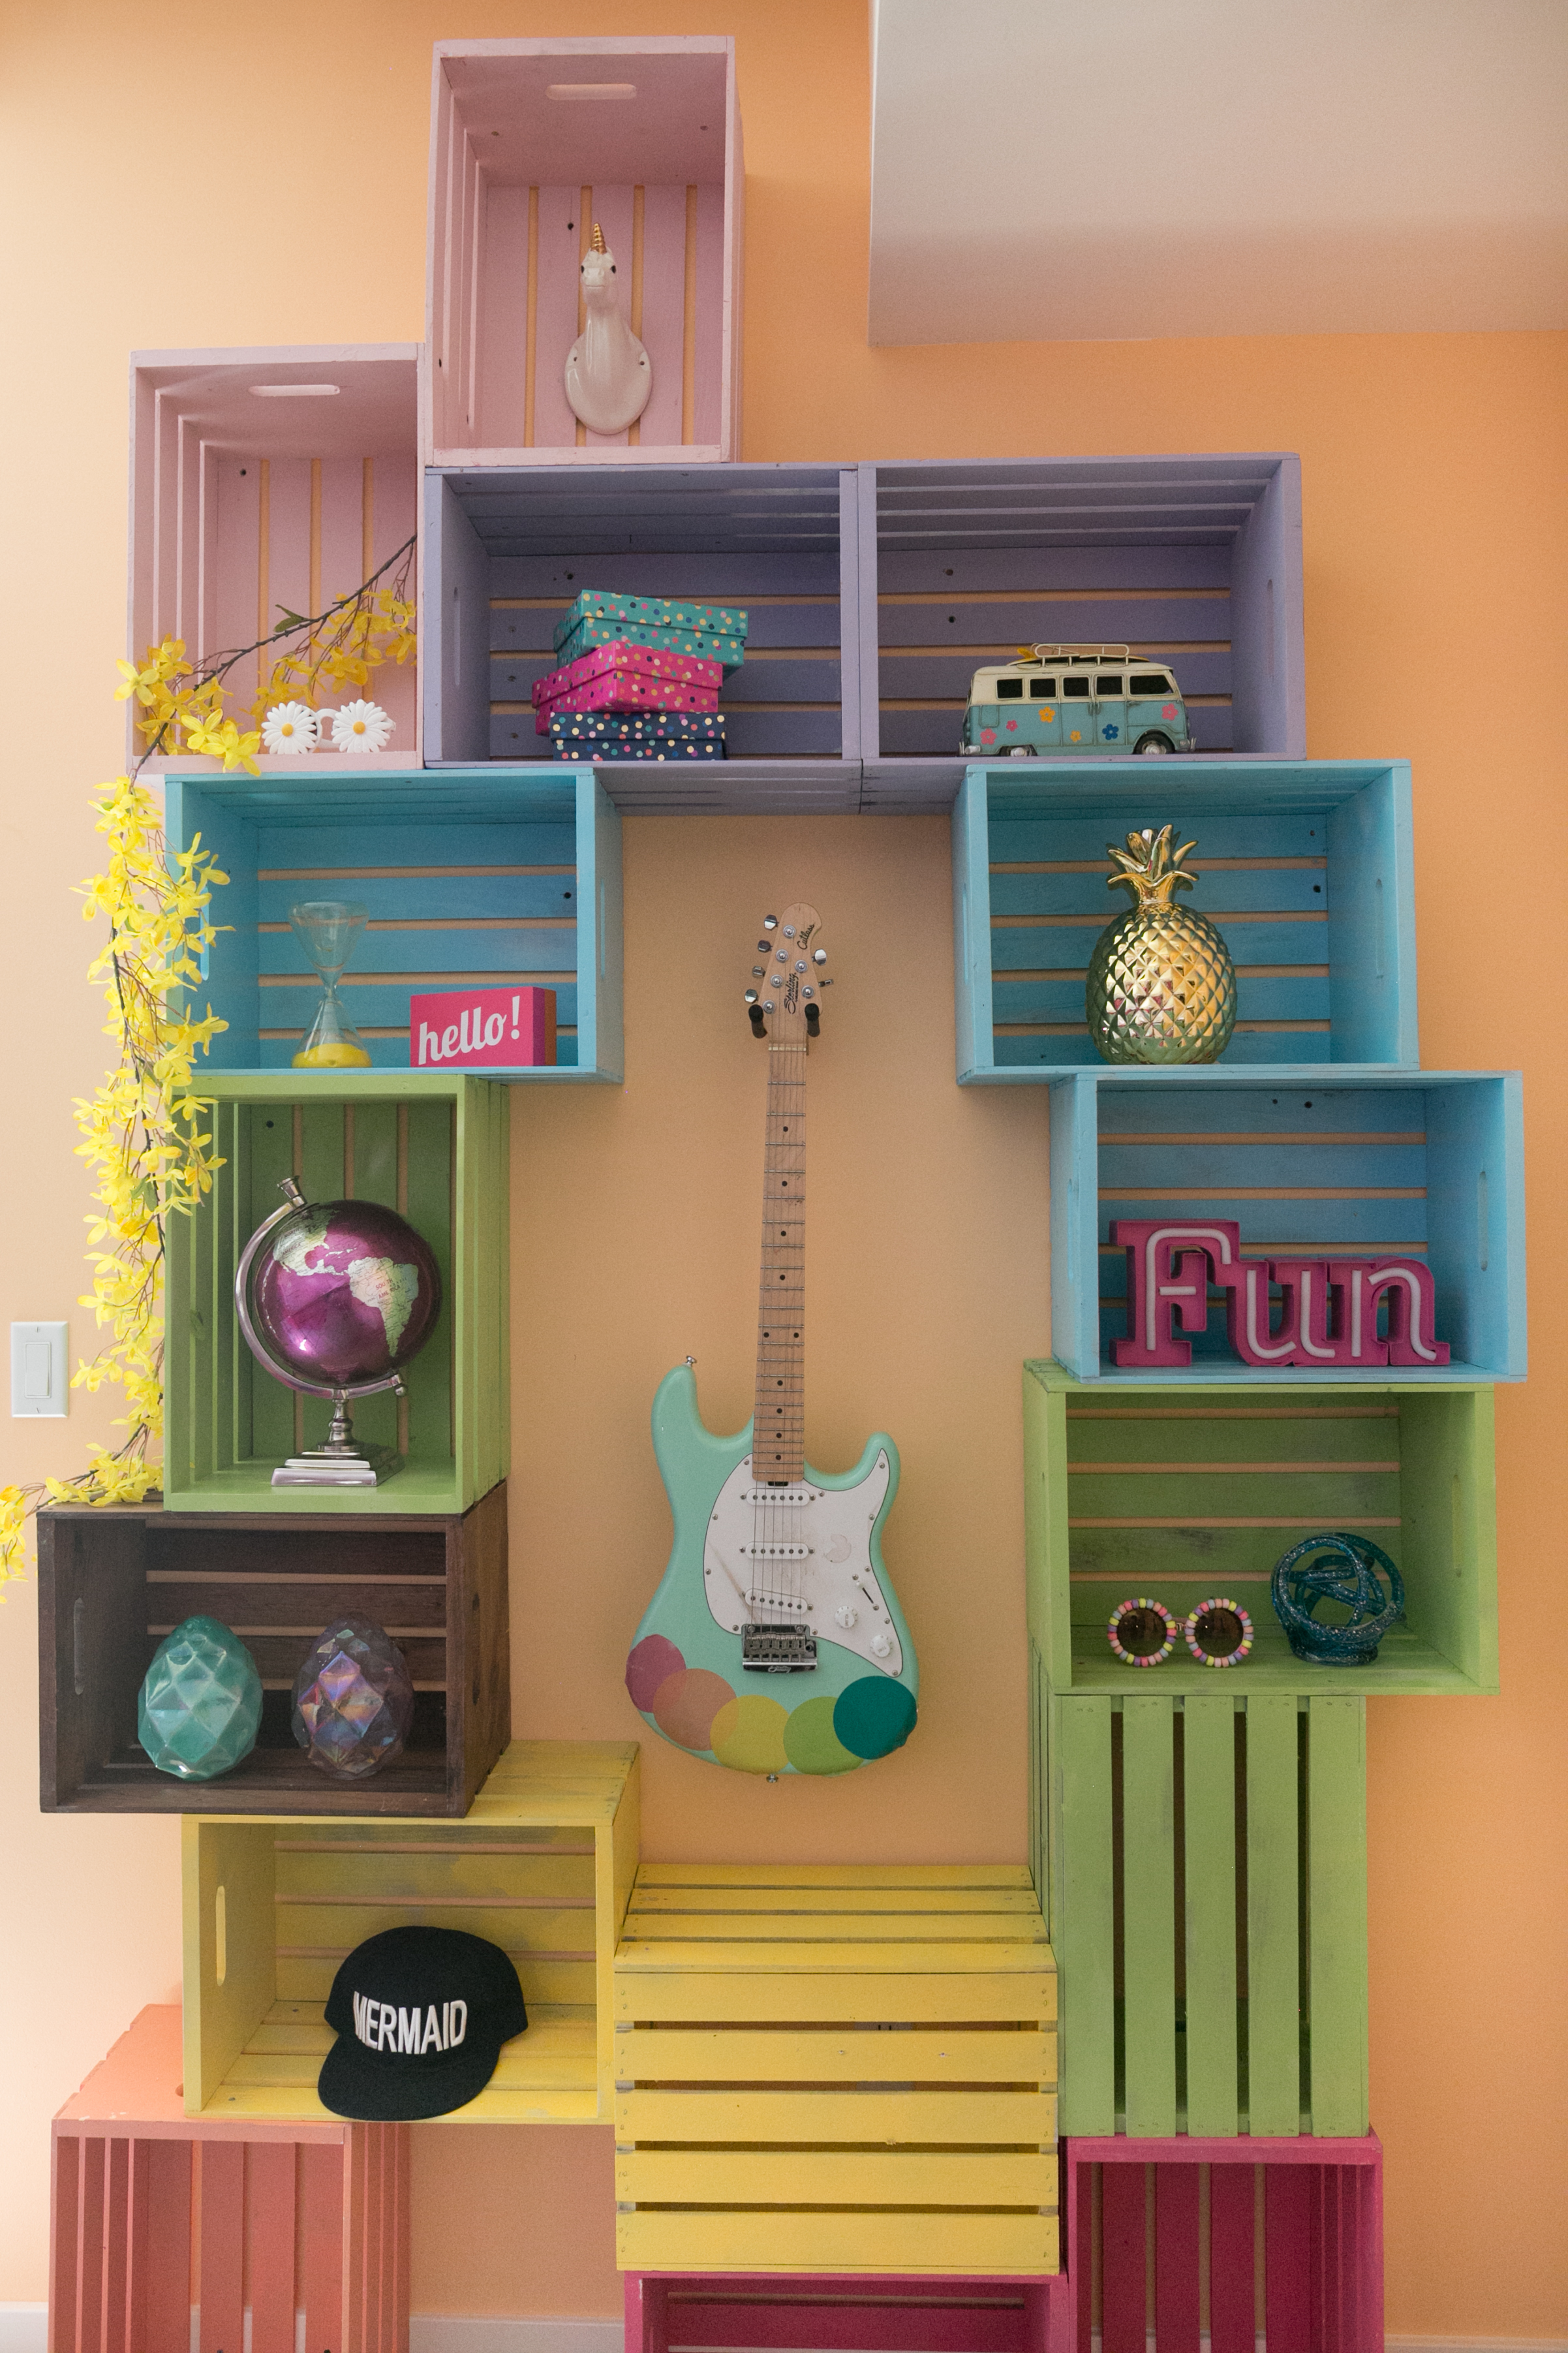 Fill your crates with decorative items jewelry